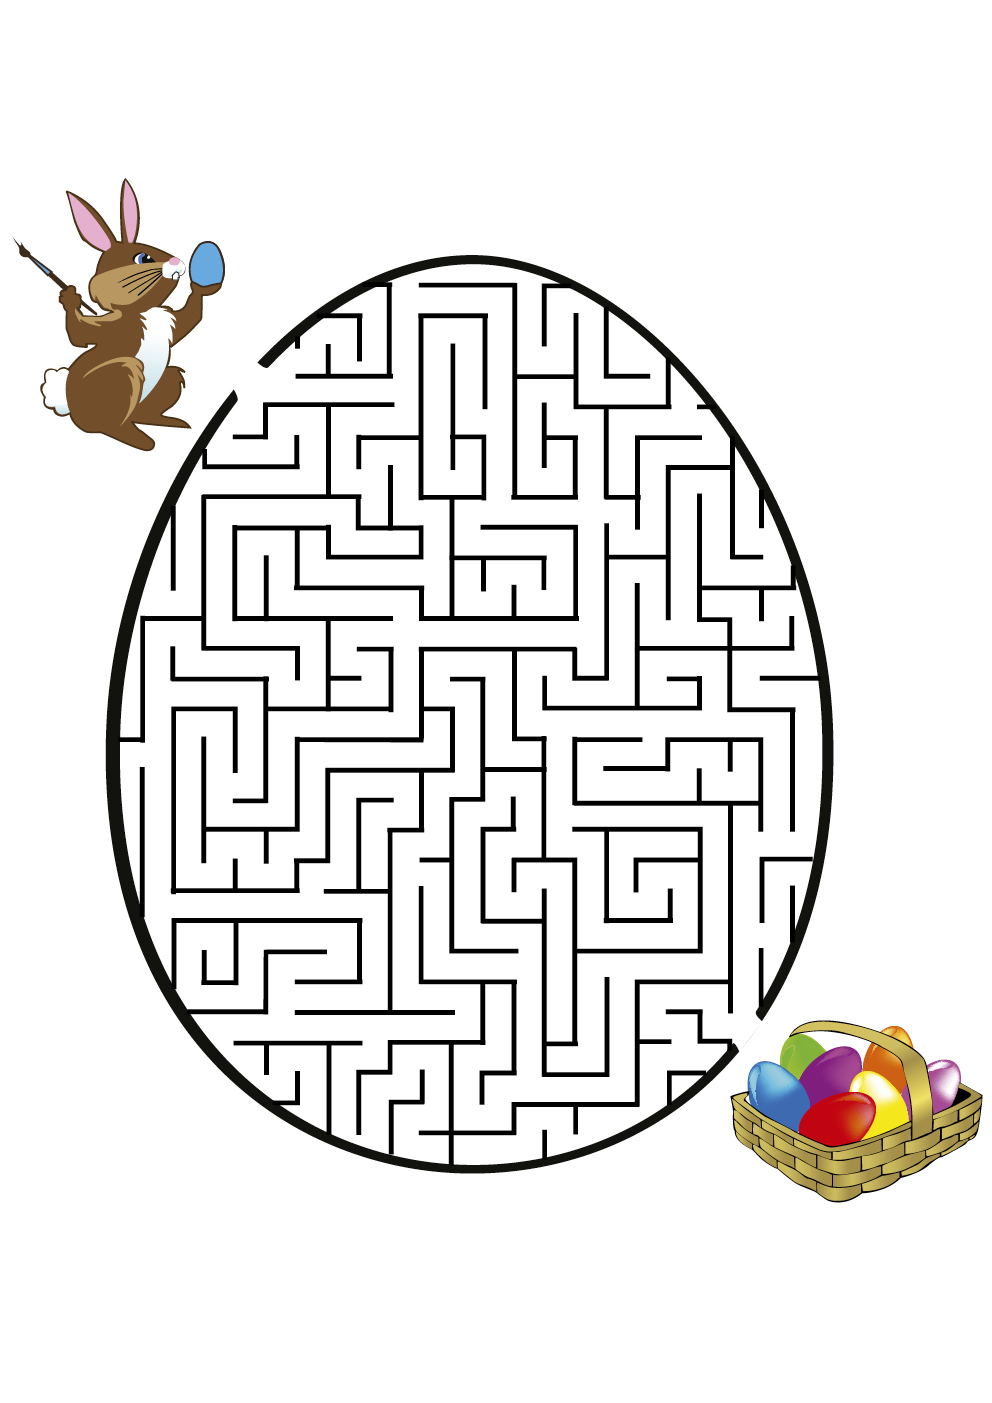 Simple Labyrinths coloring page to print and color for free : Rabbit